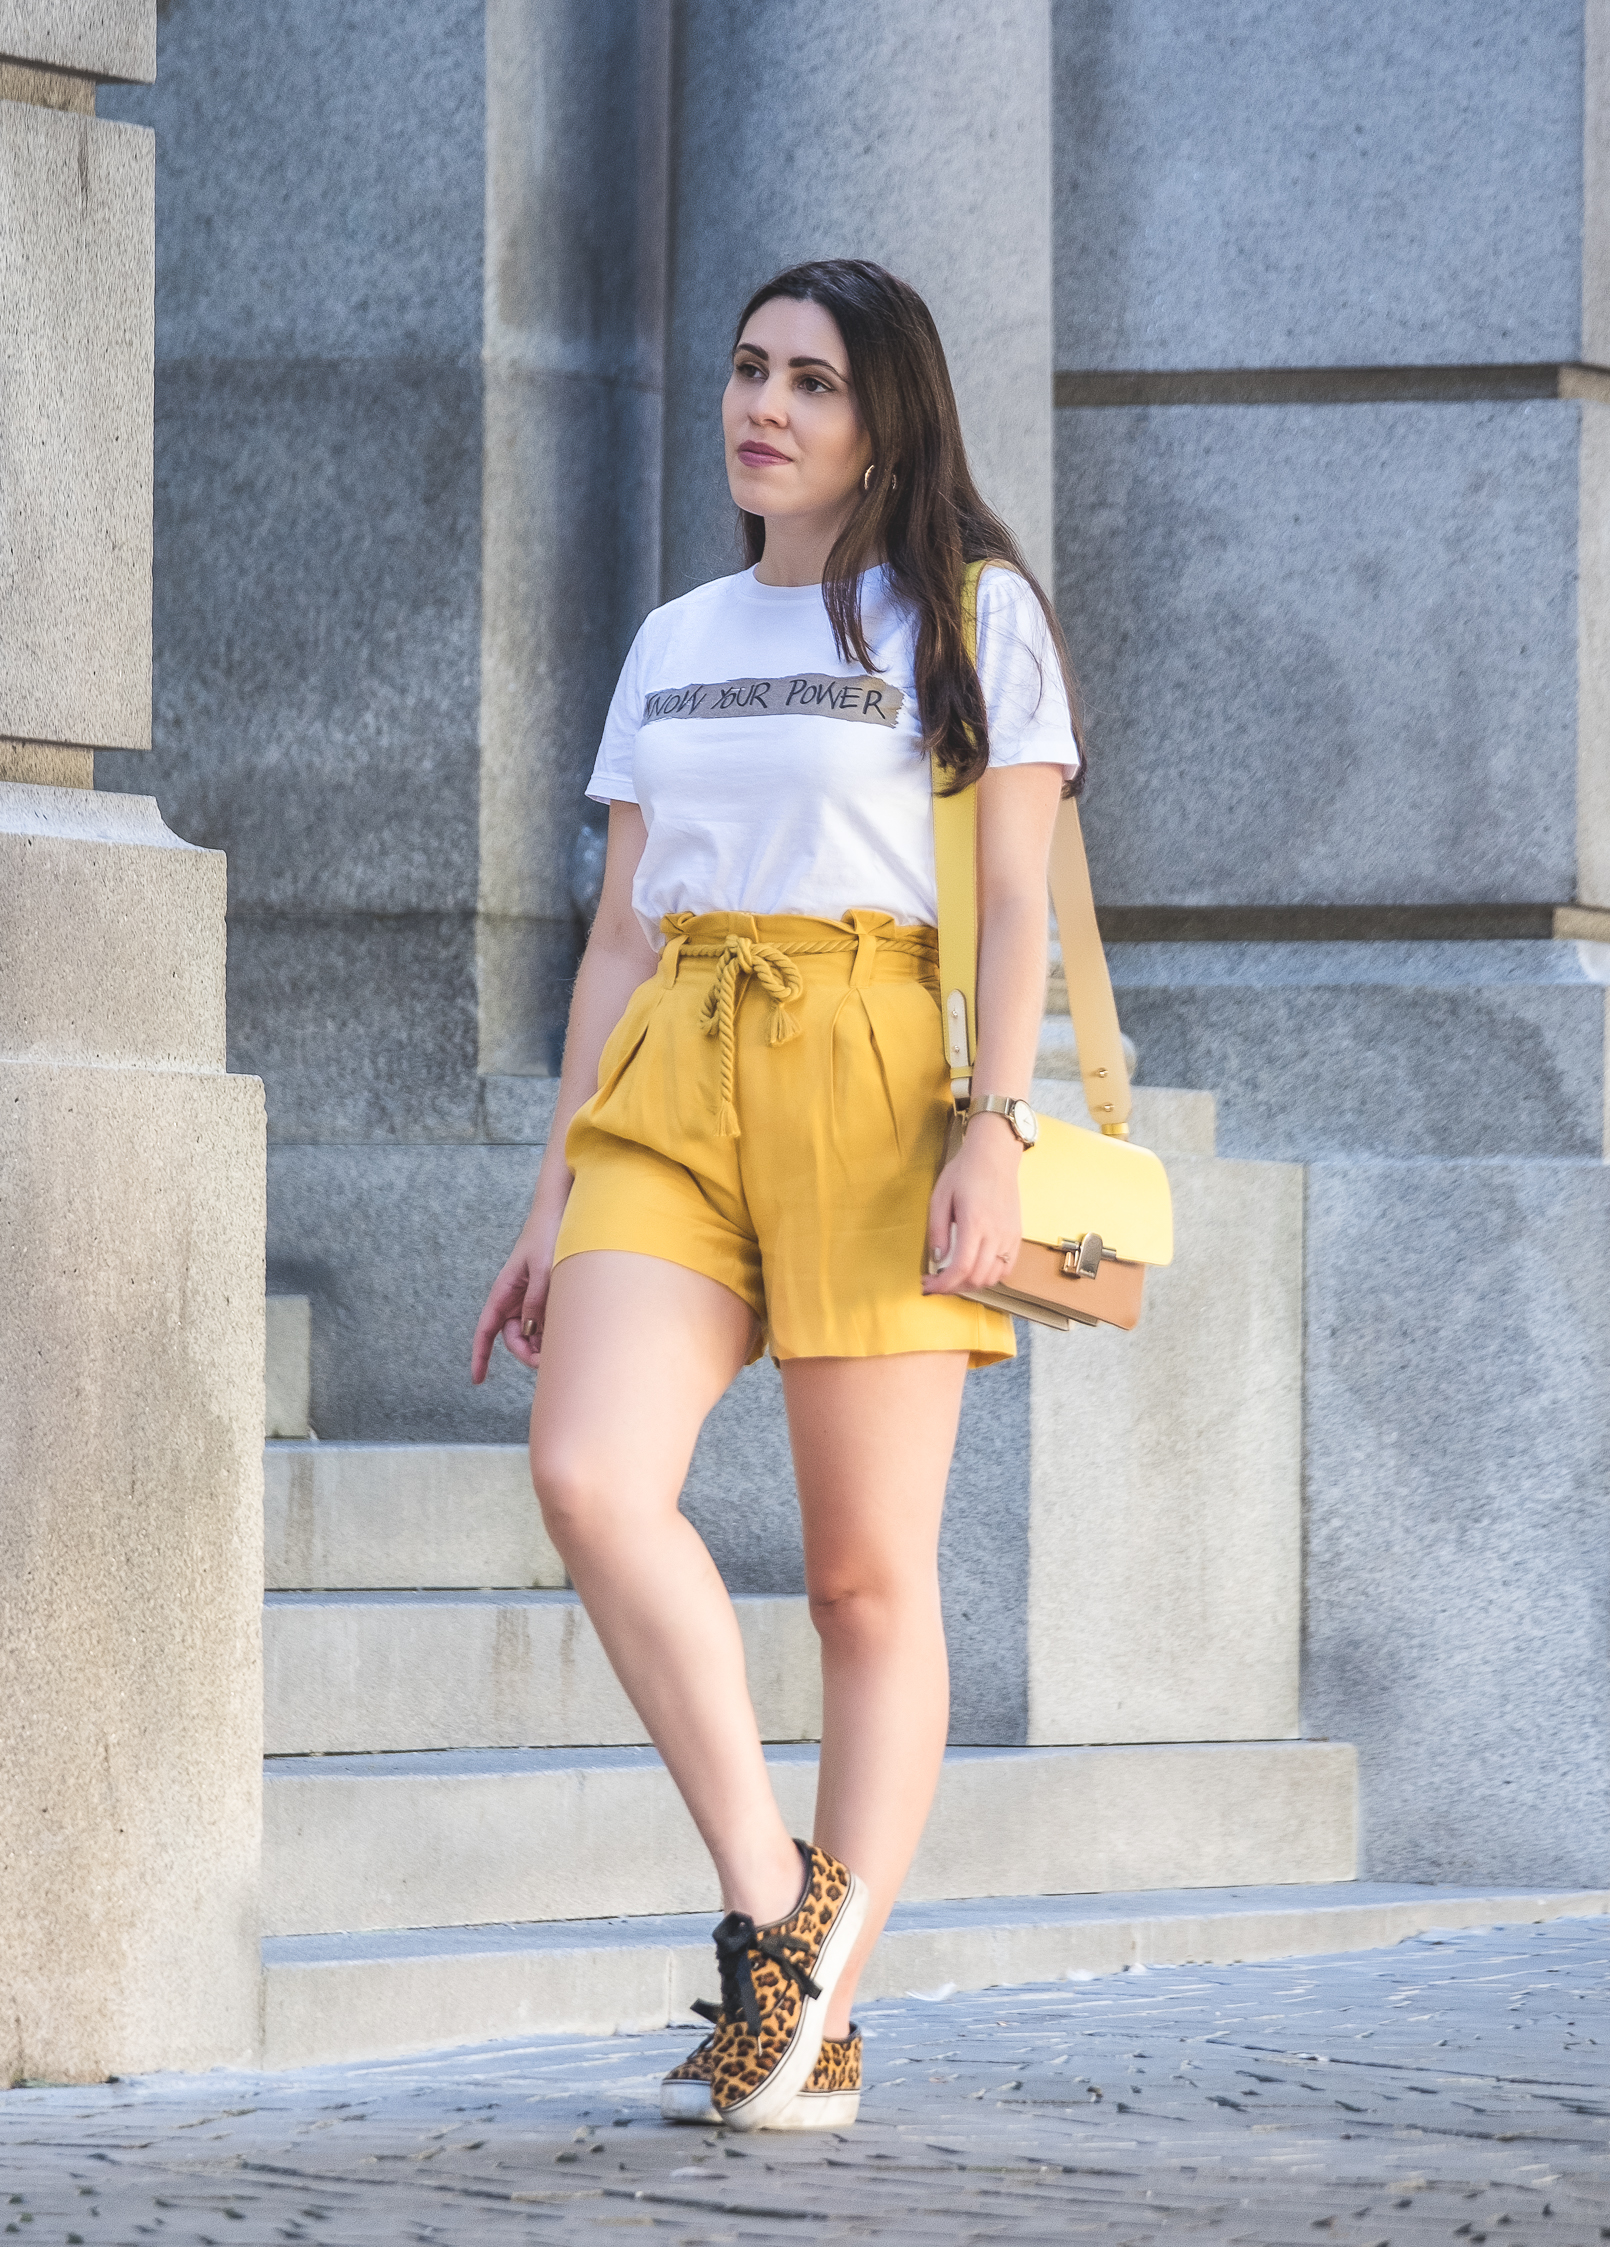 Le Fashionaire t shirt branca frase know your power stradivarius calcoes amarelo azeite fluorescente cinto corda mango tenis leopardo pelo stradivarius 5452 PT t shirt branca frase know your power stradivarius calcoes amarelo azeite fluorescente cinto corda mango tenis leopardo pelo stradivarius 5452 PT